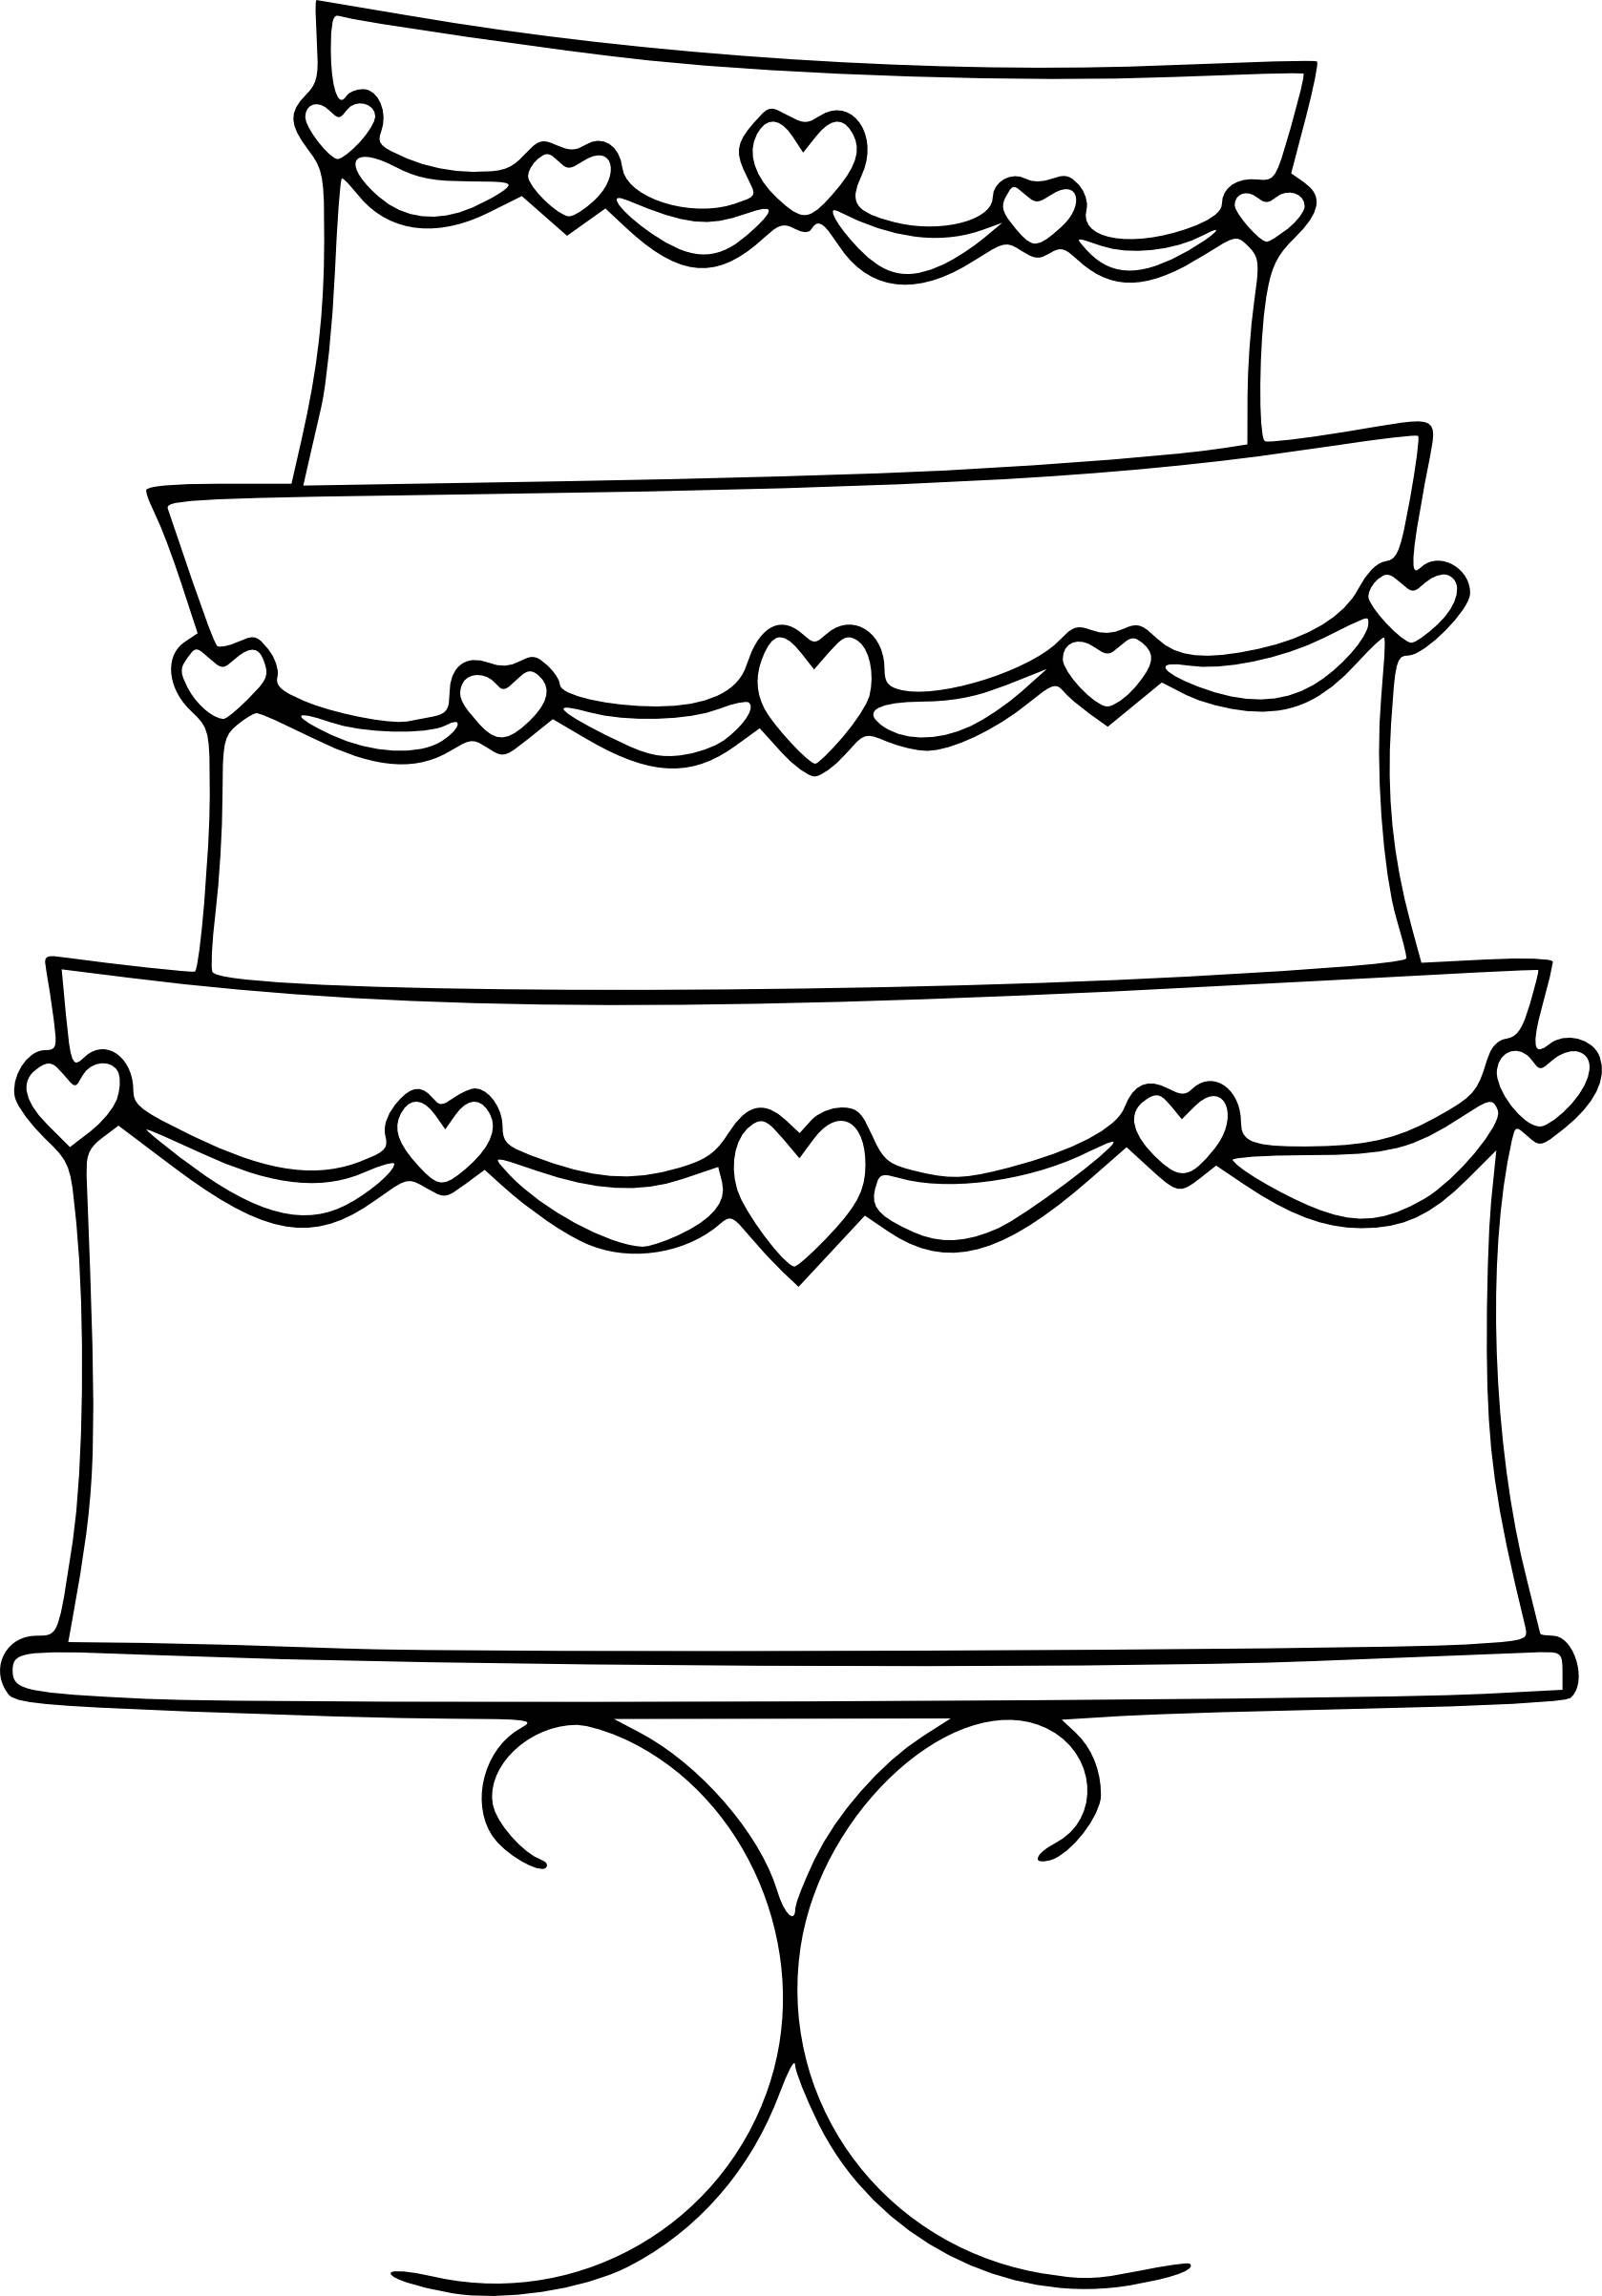 Pin By Brittany Davis On Wedding Cards Inspiration Wedding Coloring Pages Cake Drawing Free Wedding Printables